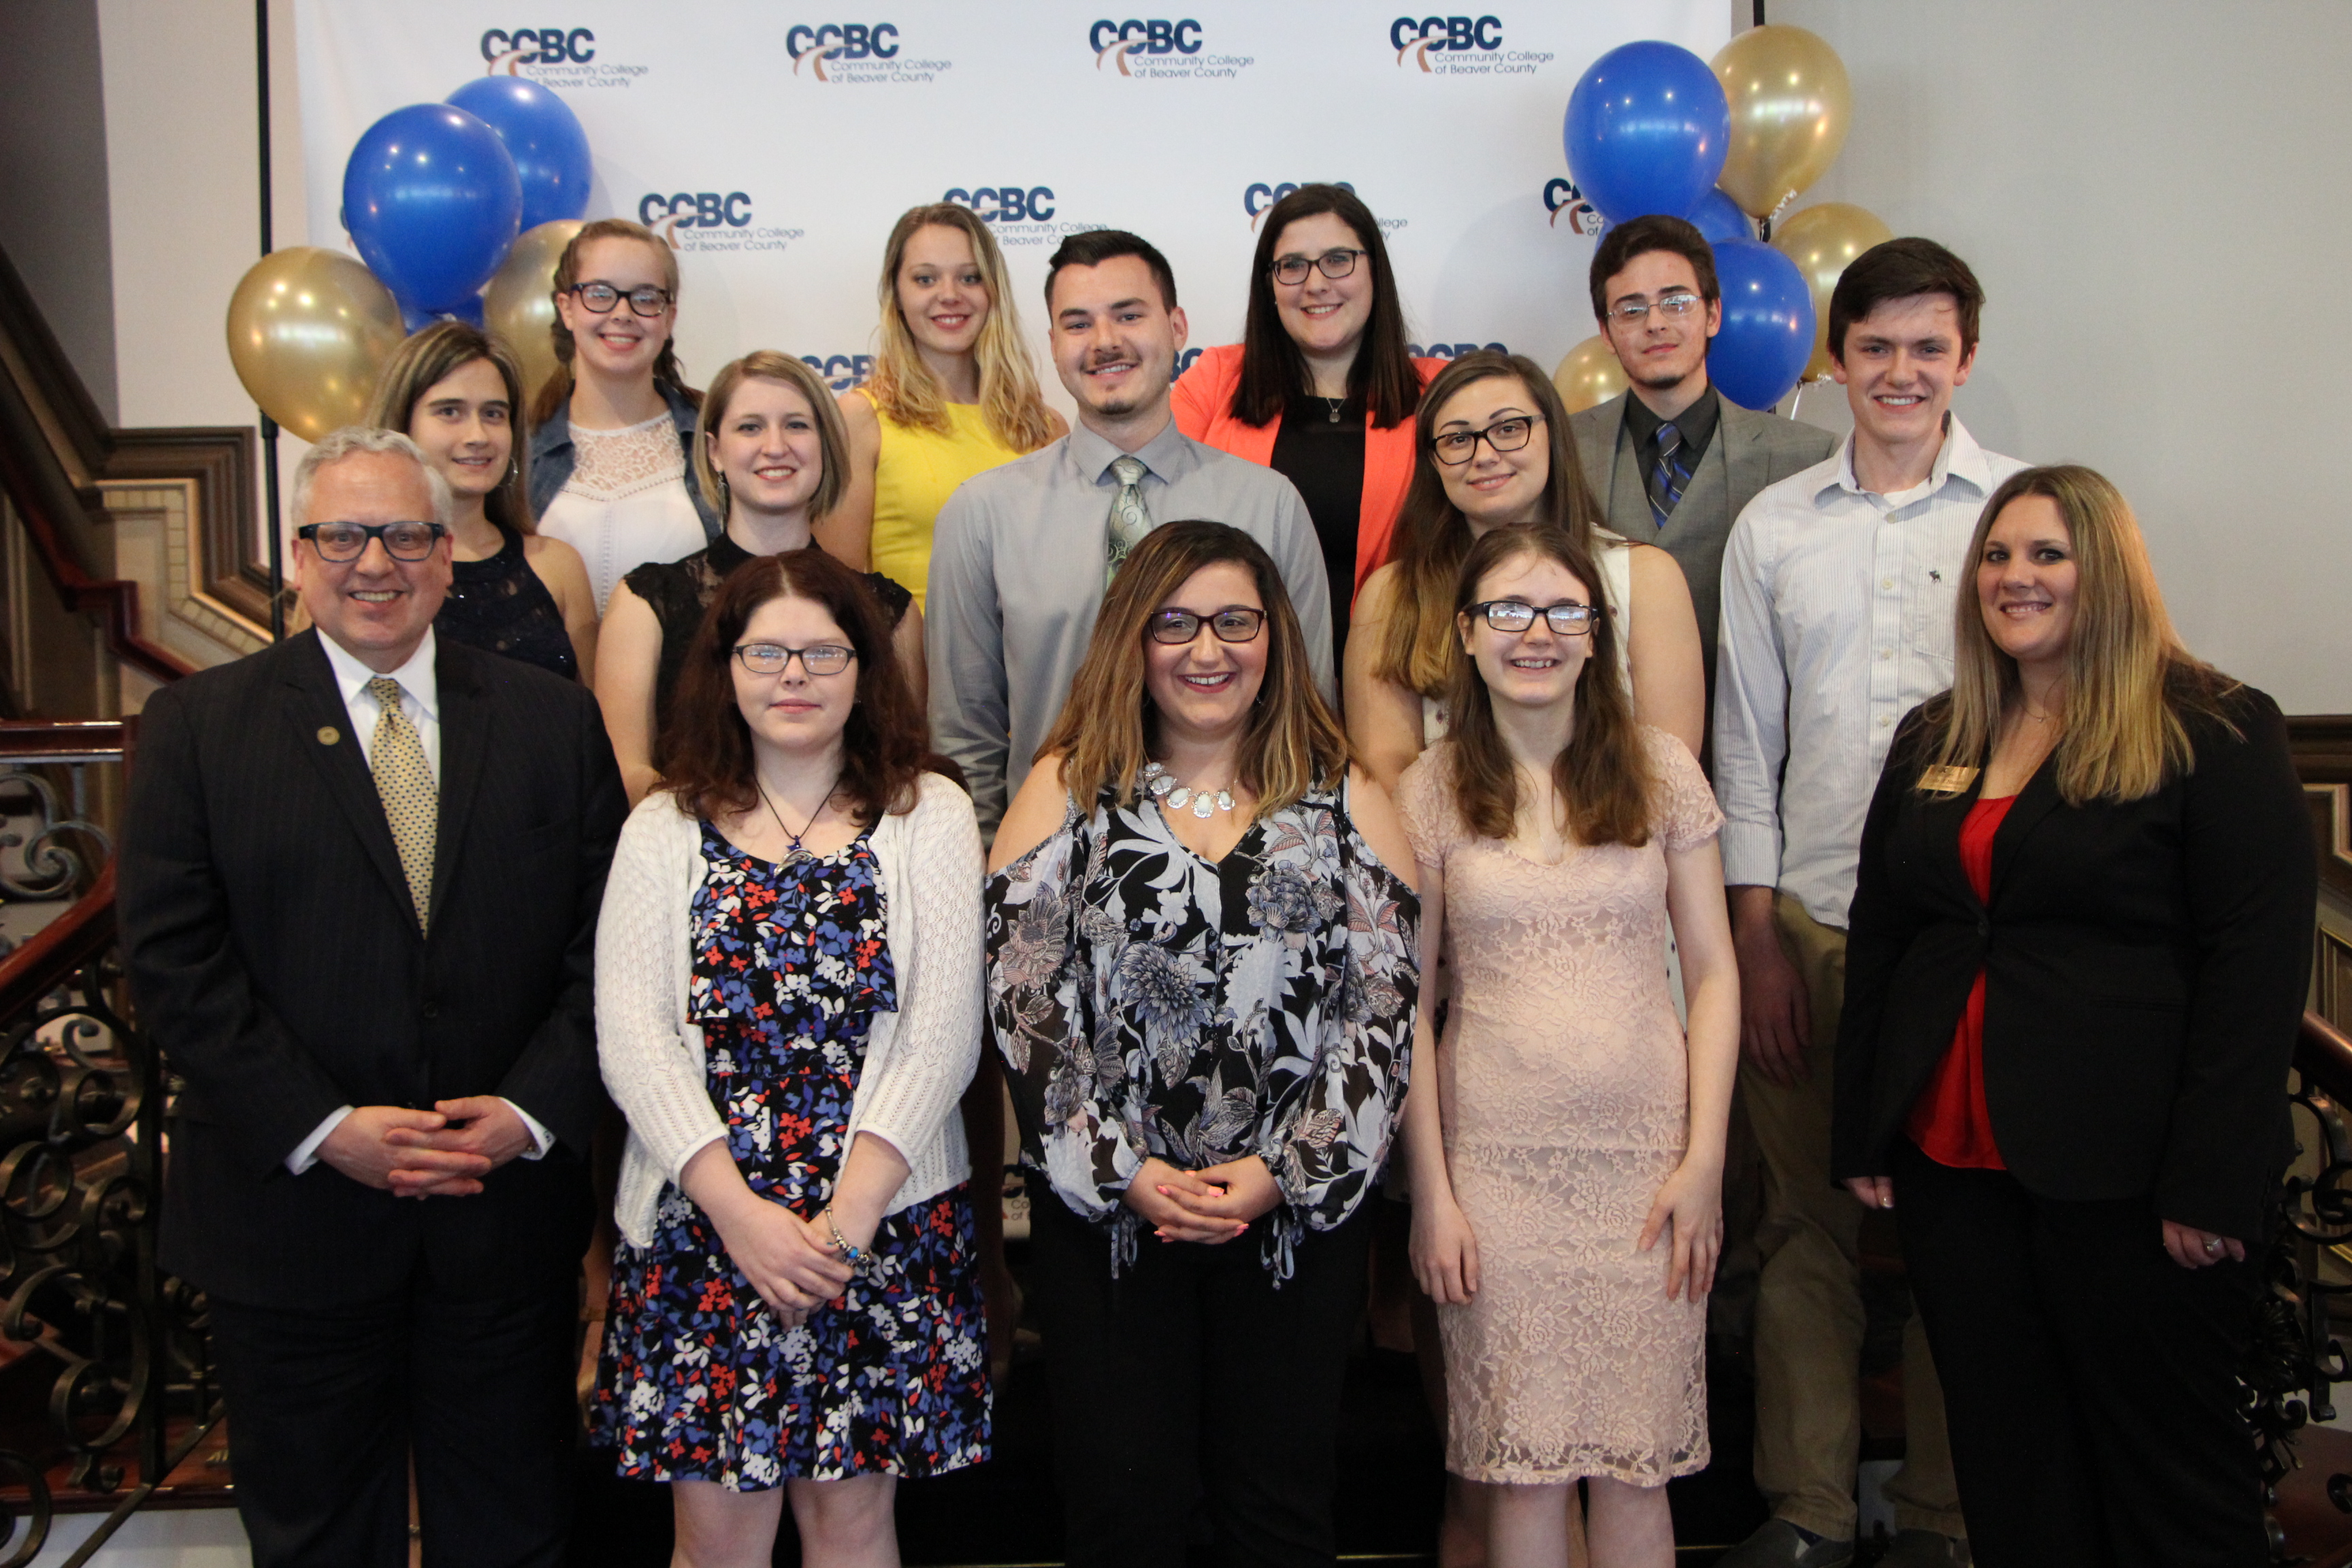 CCBC Celebrates Student Success at First Annual Night of